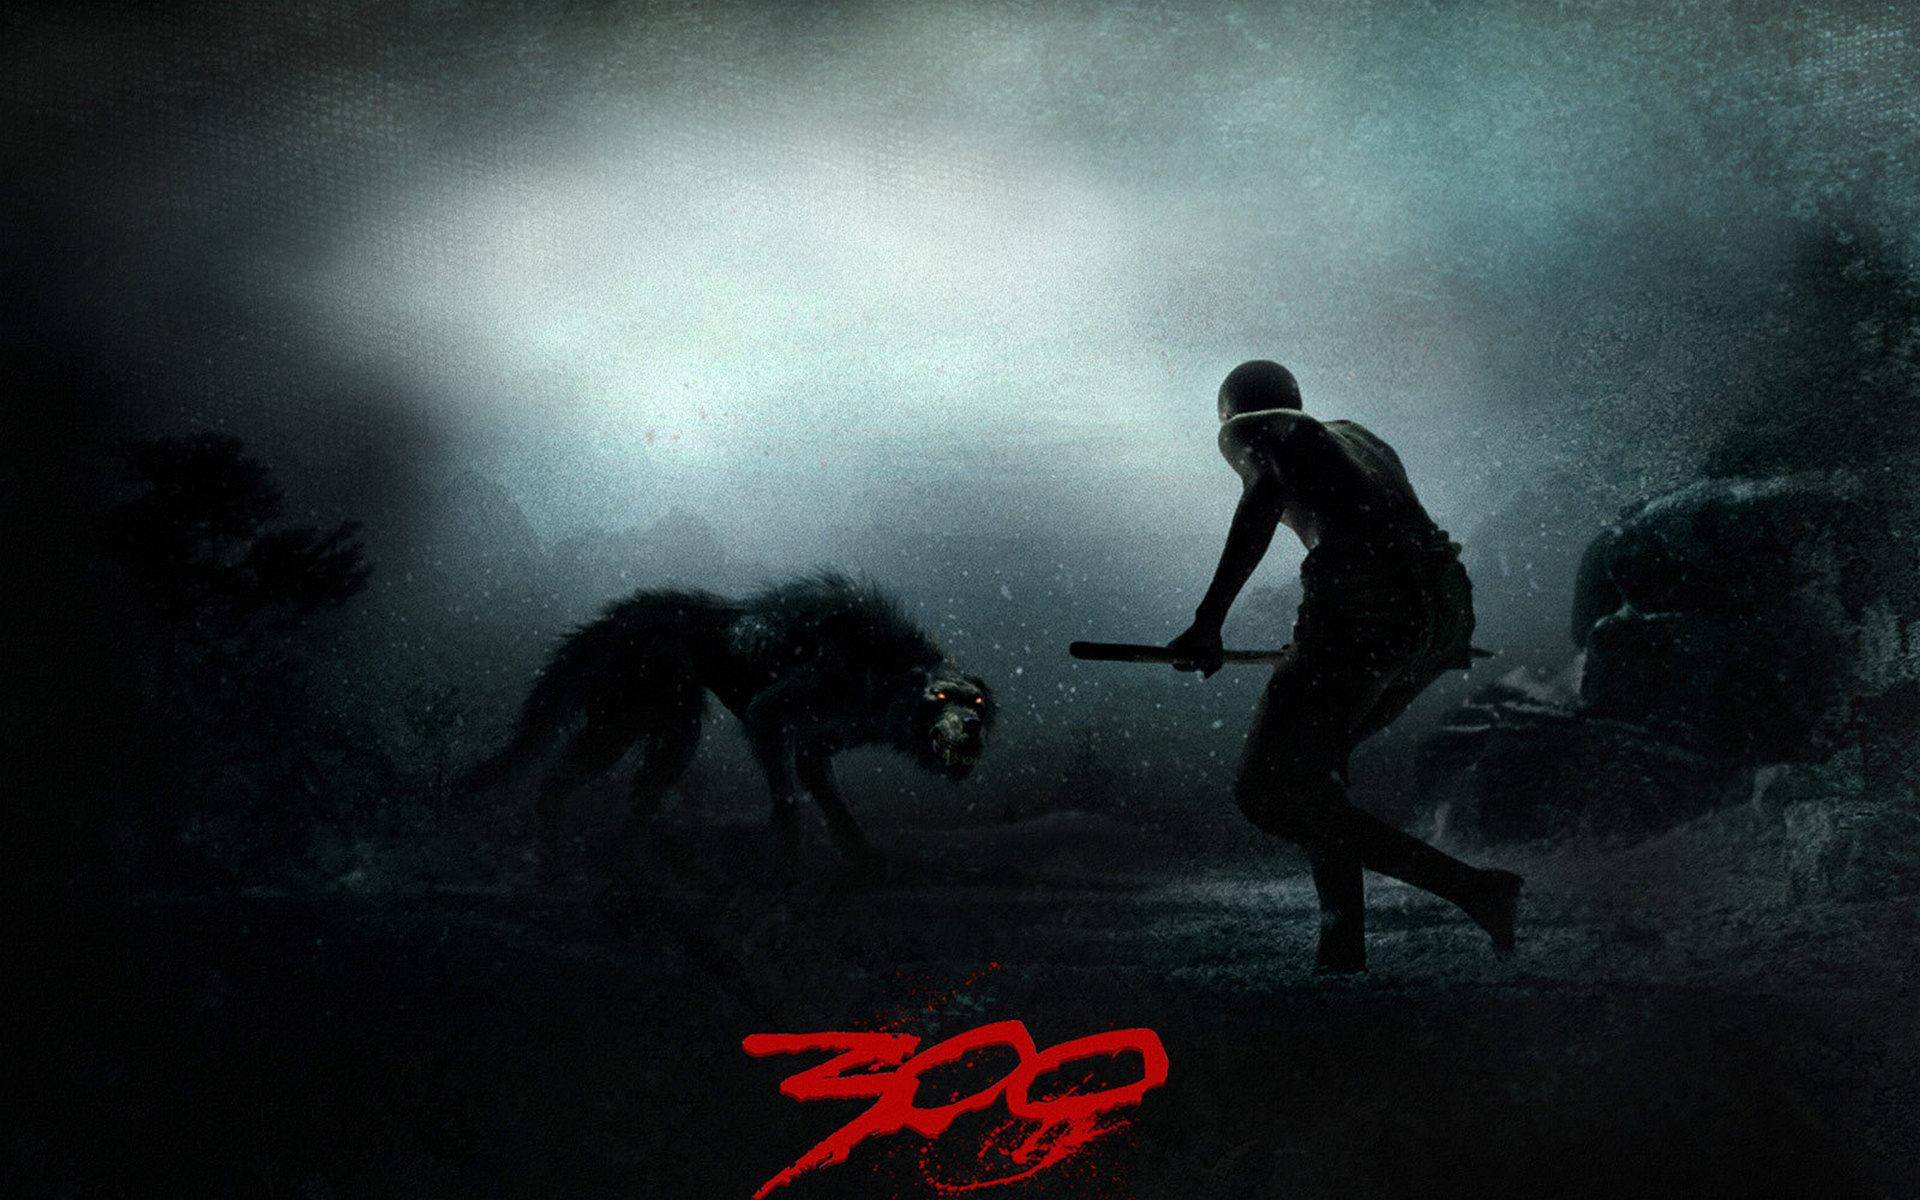 300 spartans full movie free